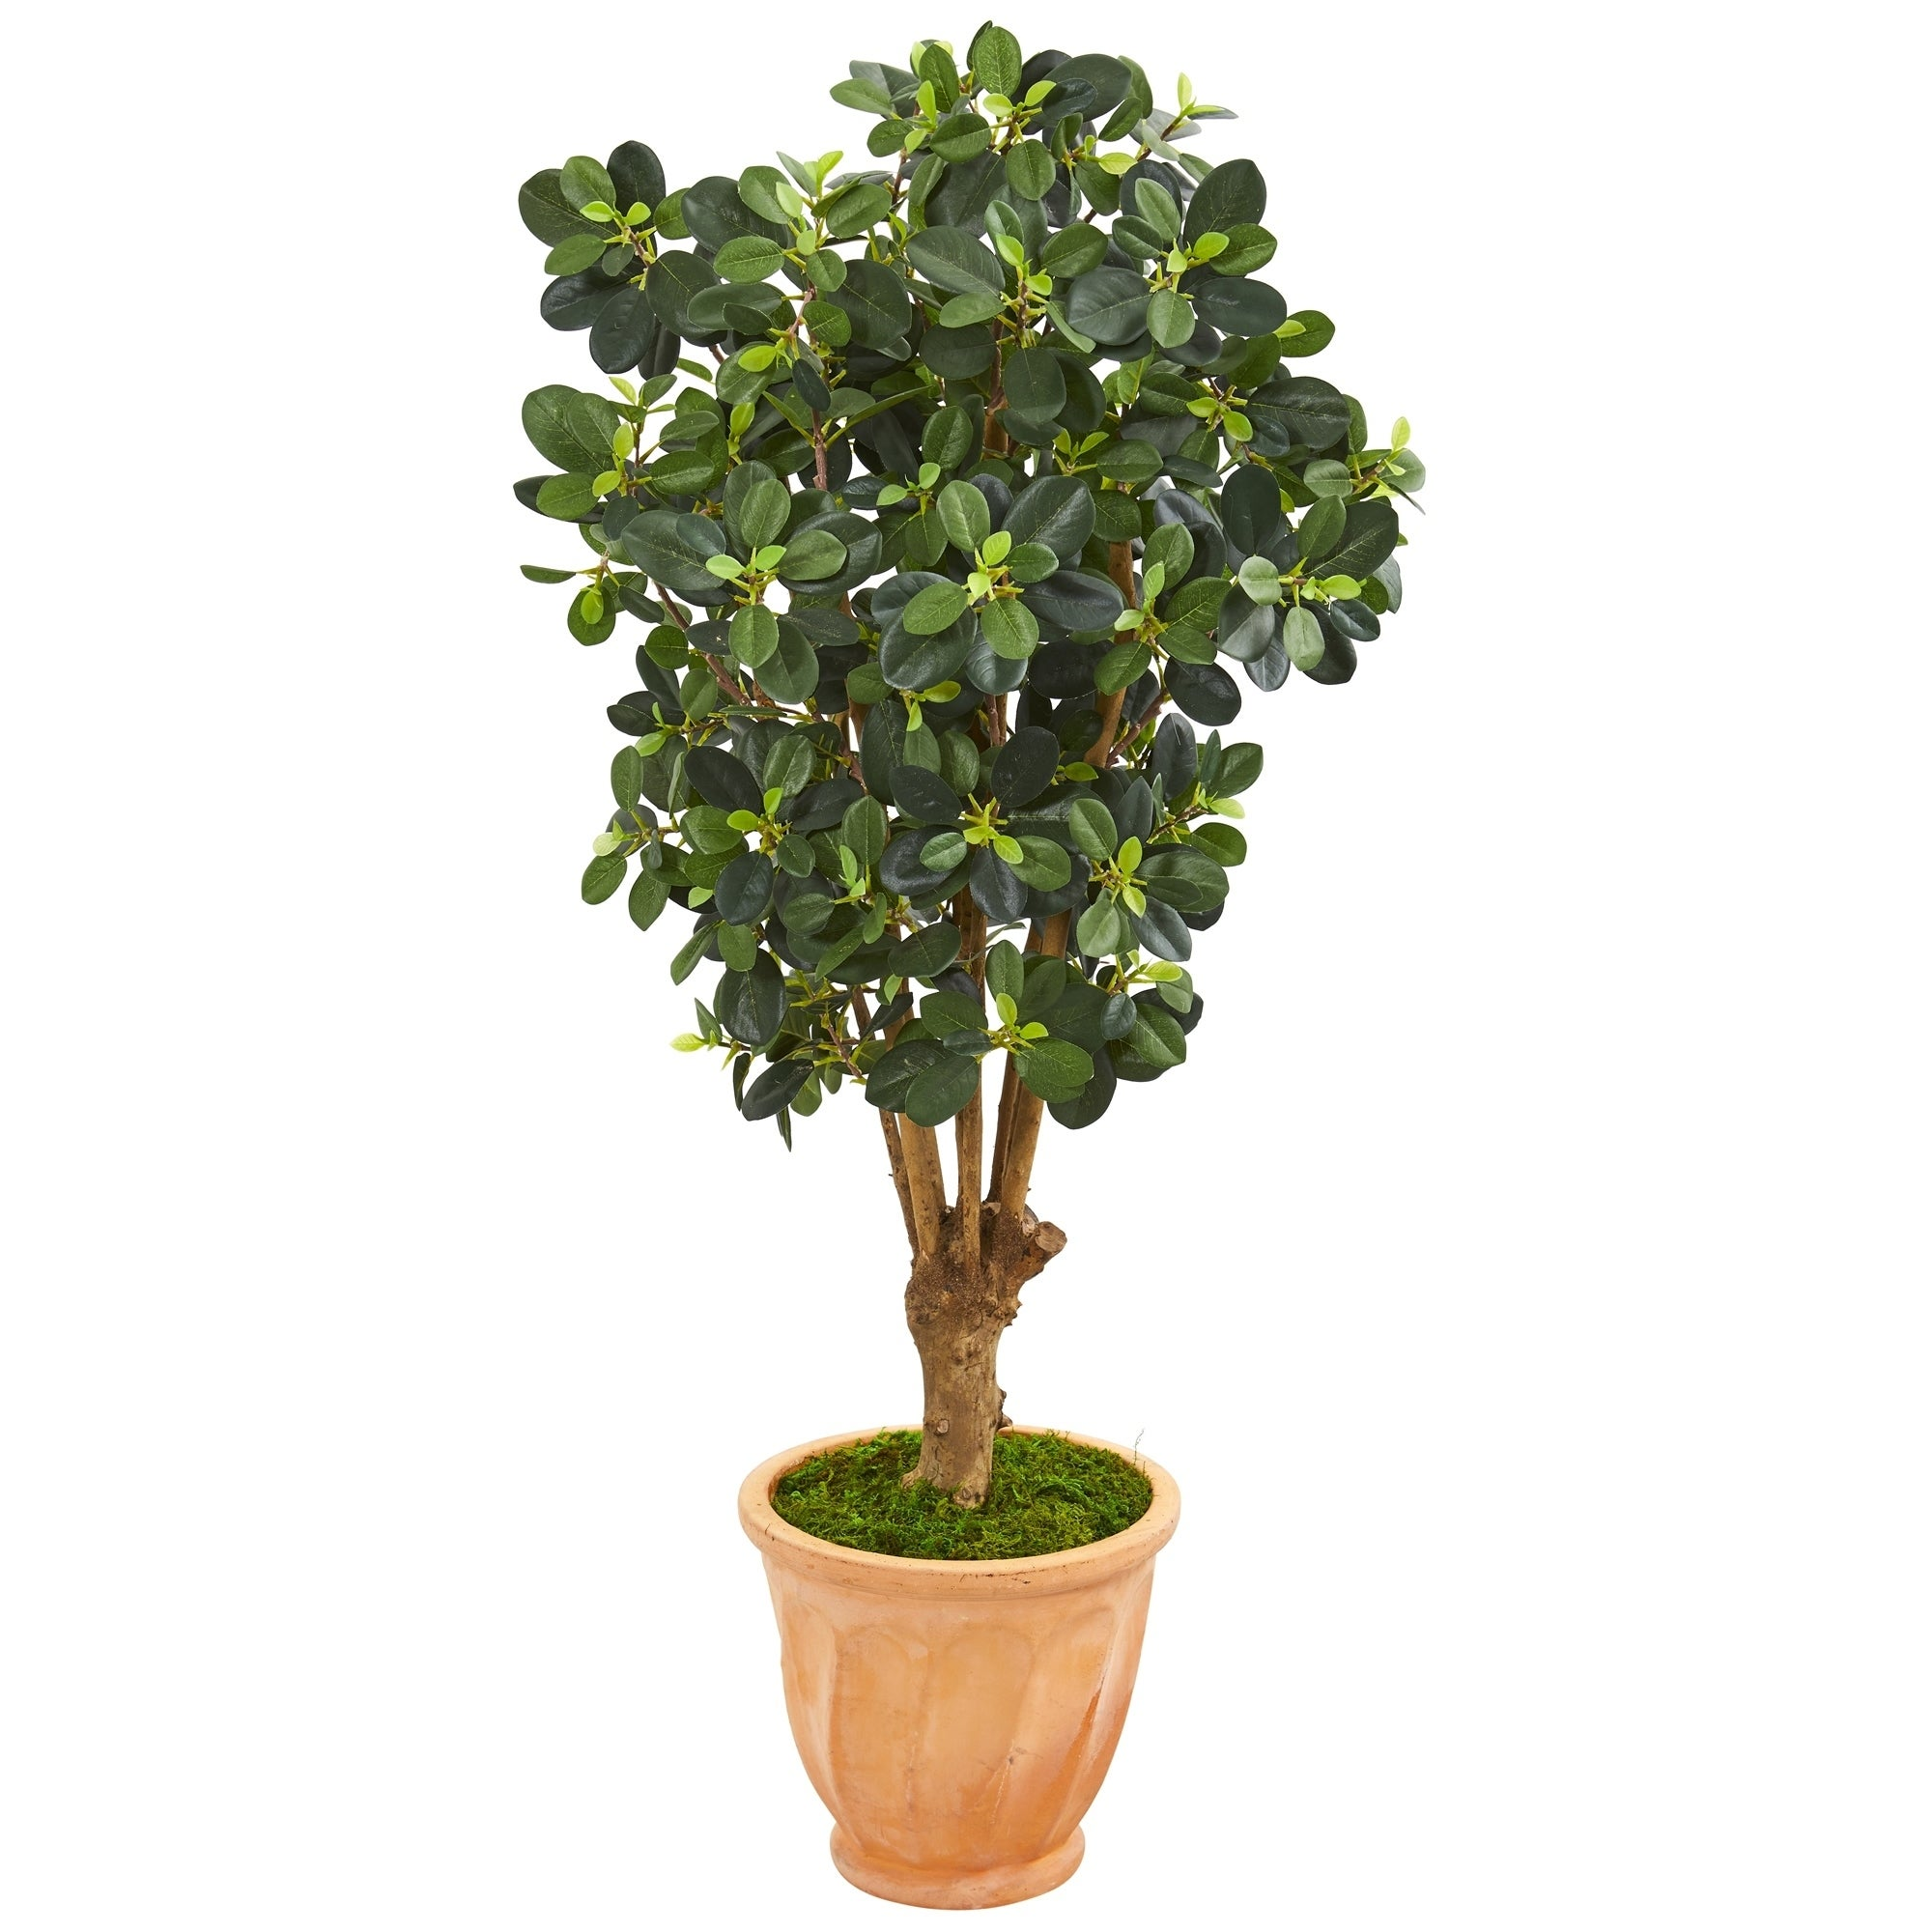 46 Panda Ficus Artificial Tree in Terra-Cotta Planter